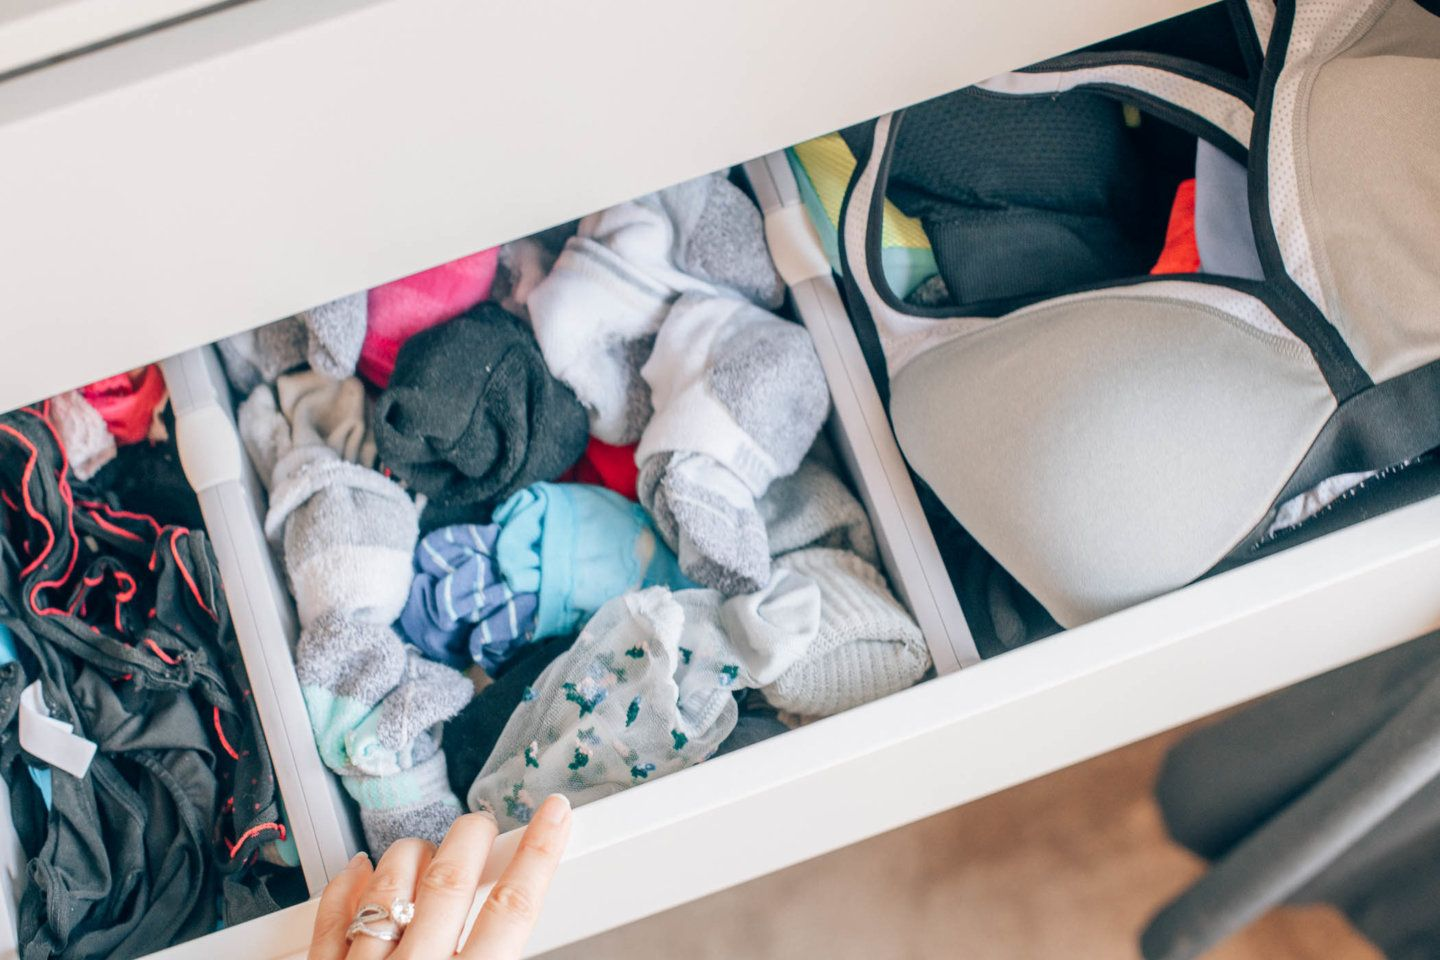 IKEA PAX Wardrobe Closet Review by popular San Francisco lifestyle blogger What The Fab